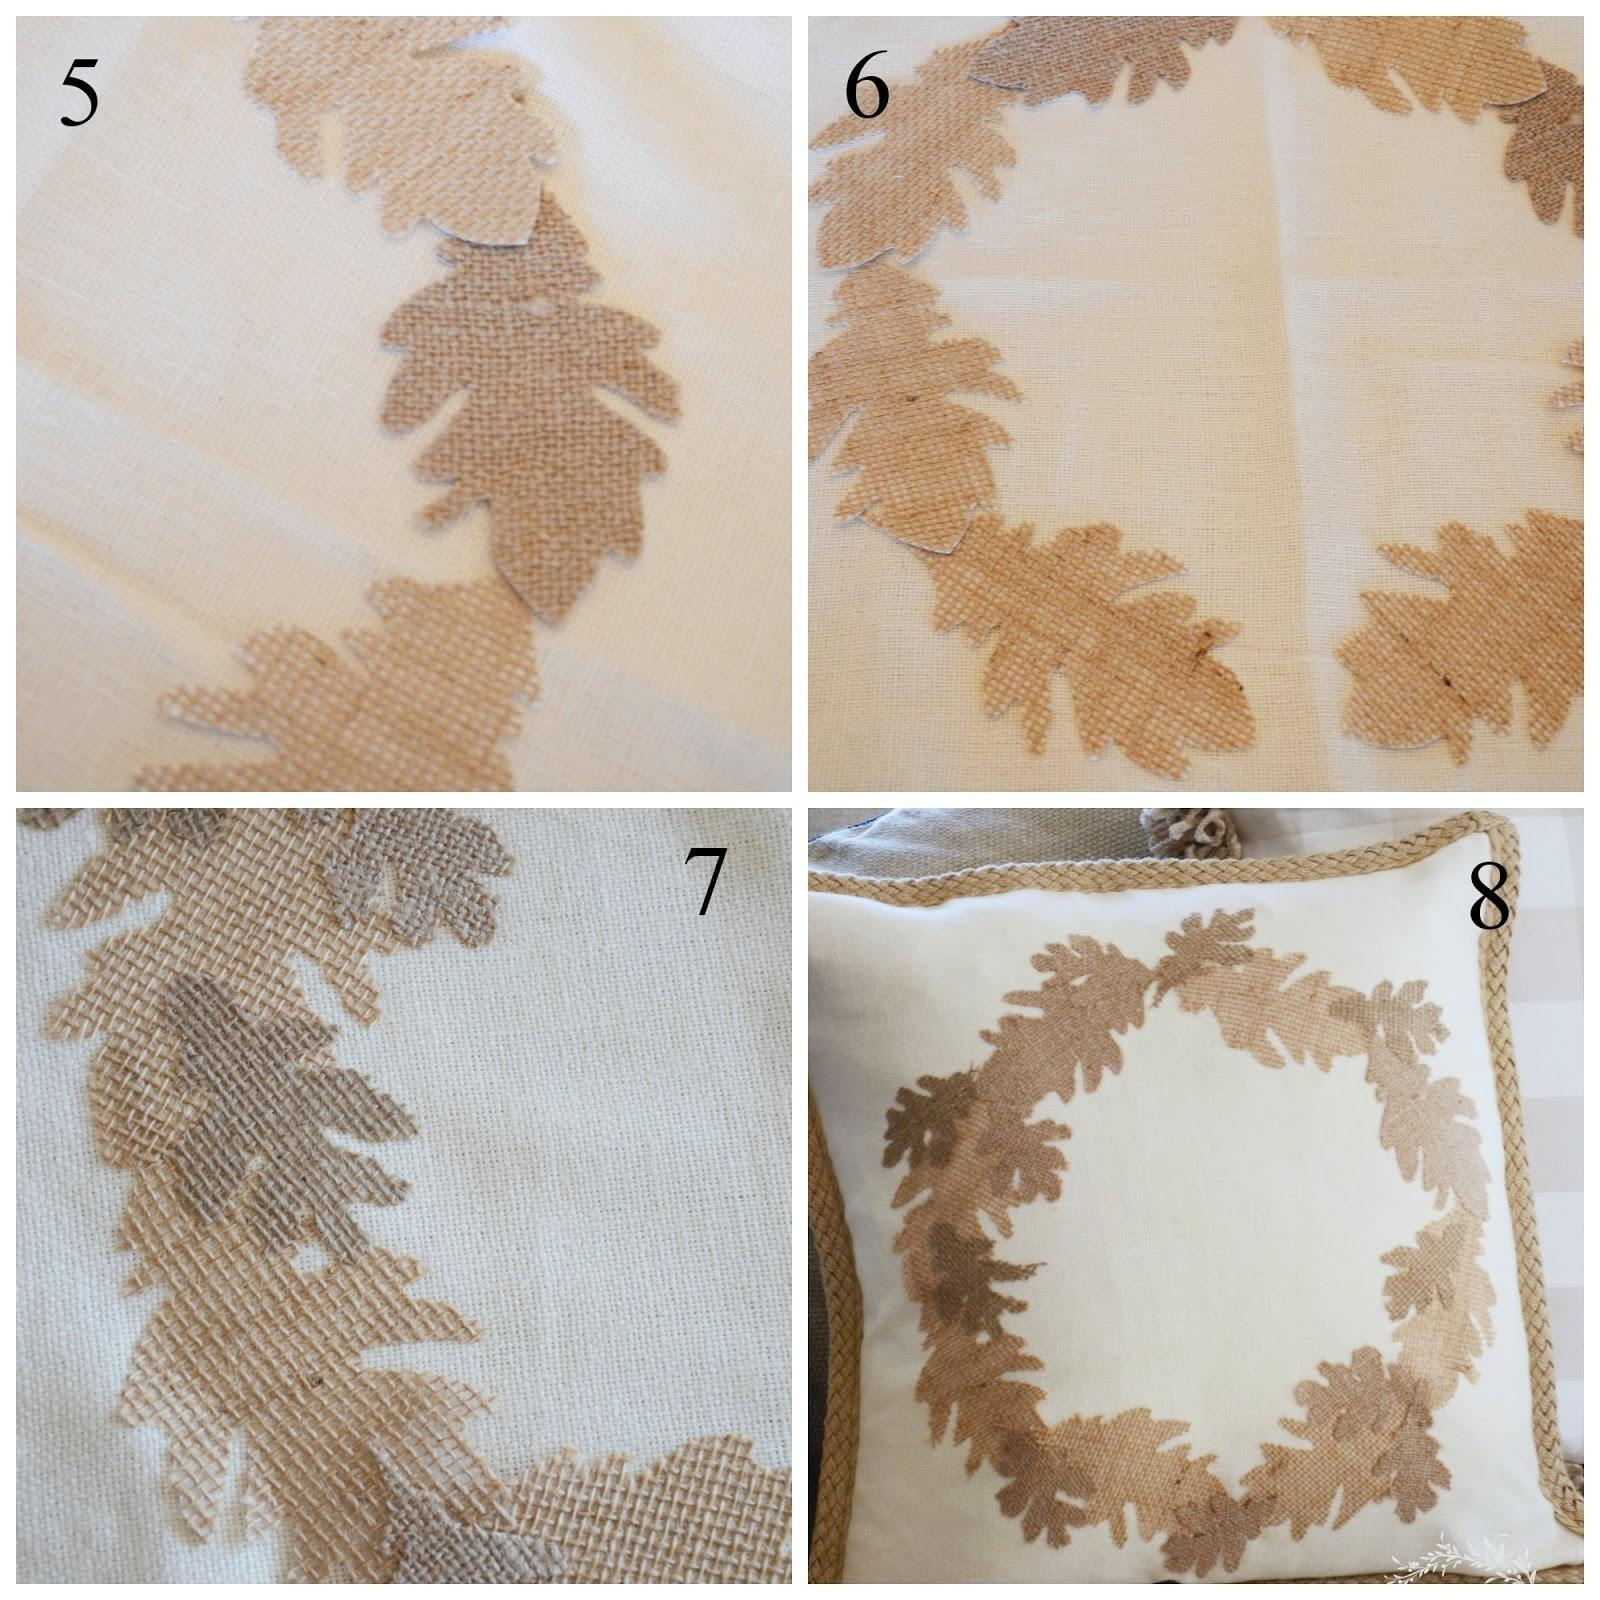 Stonegable Fall Sew Burlap Leaf Pillow Diy